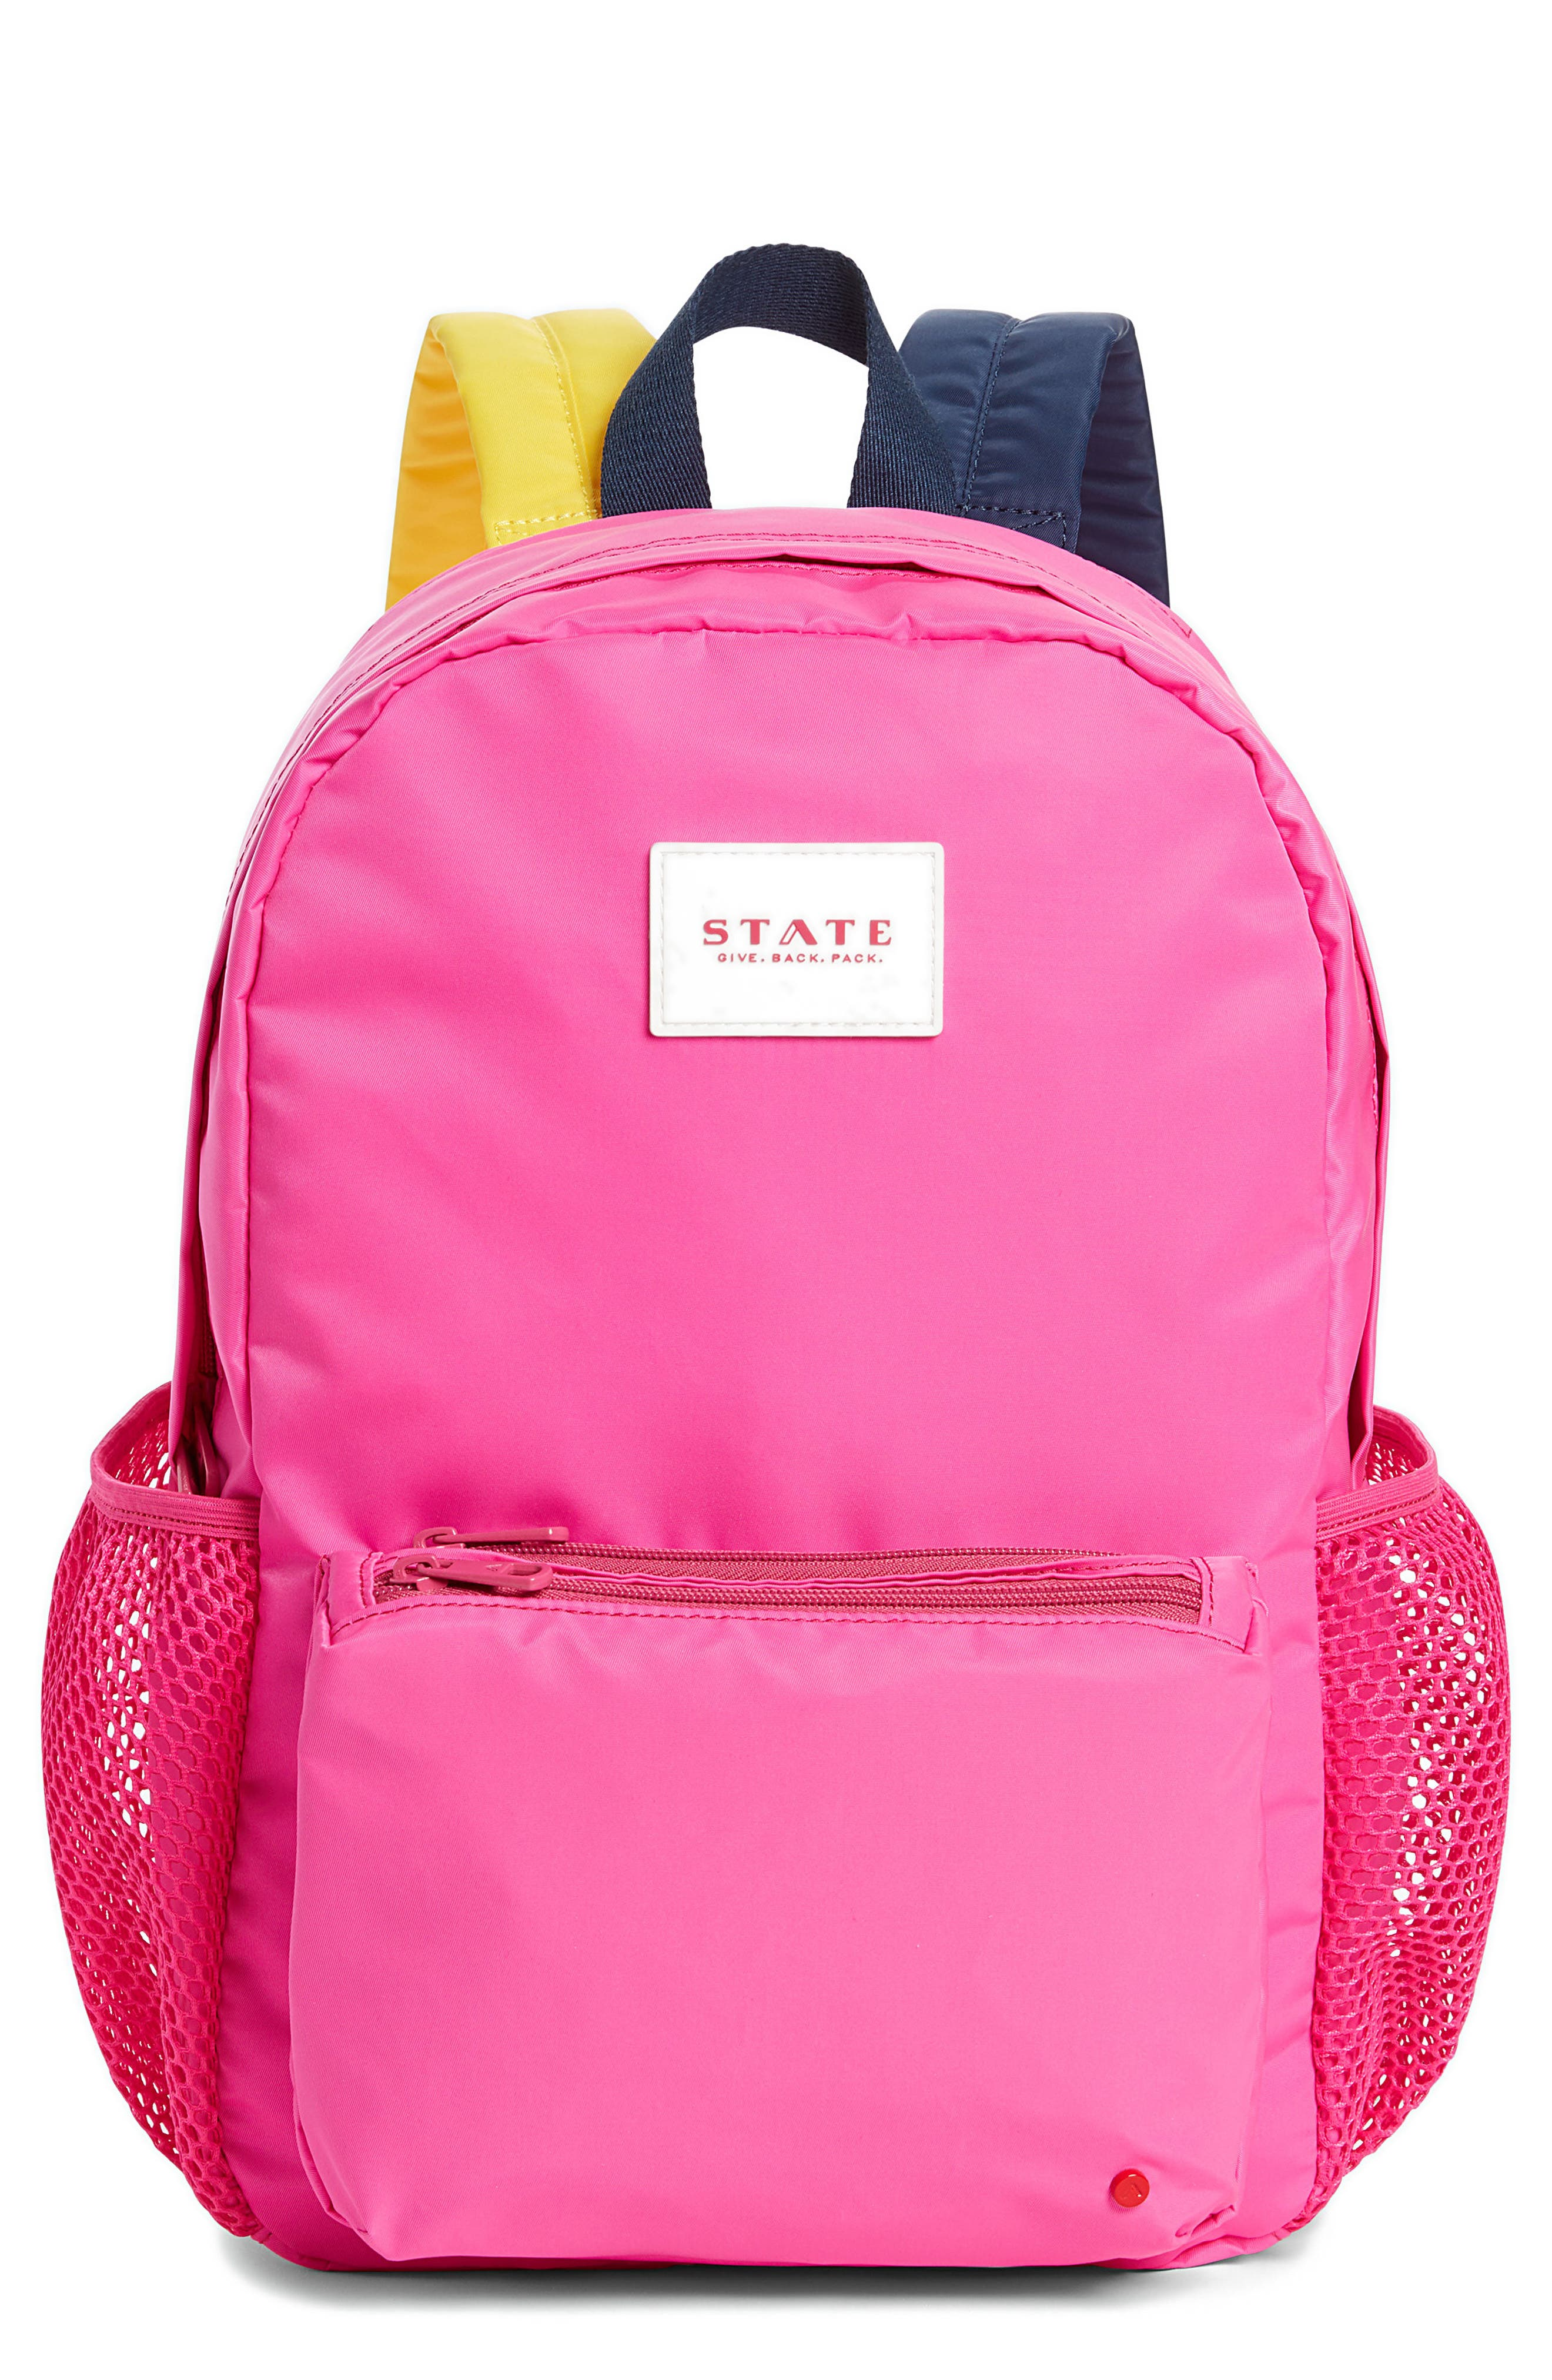 STATE Bags Lawrence Backpack (Girls)